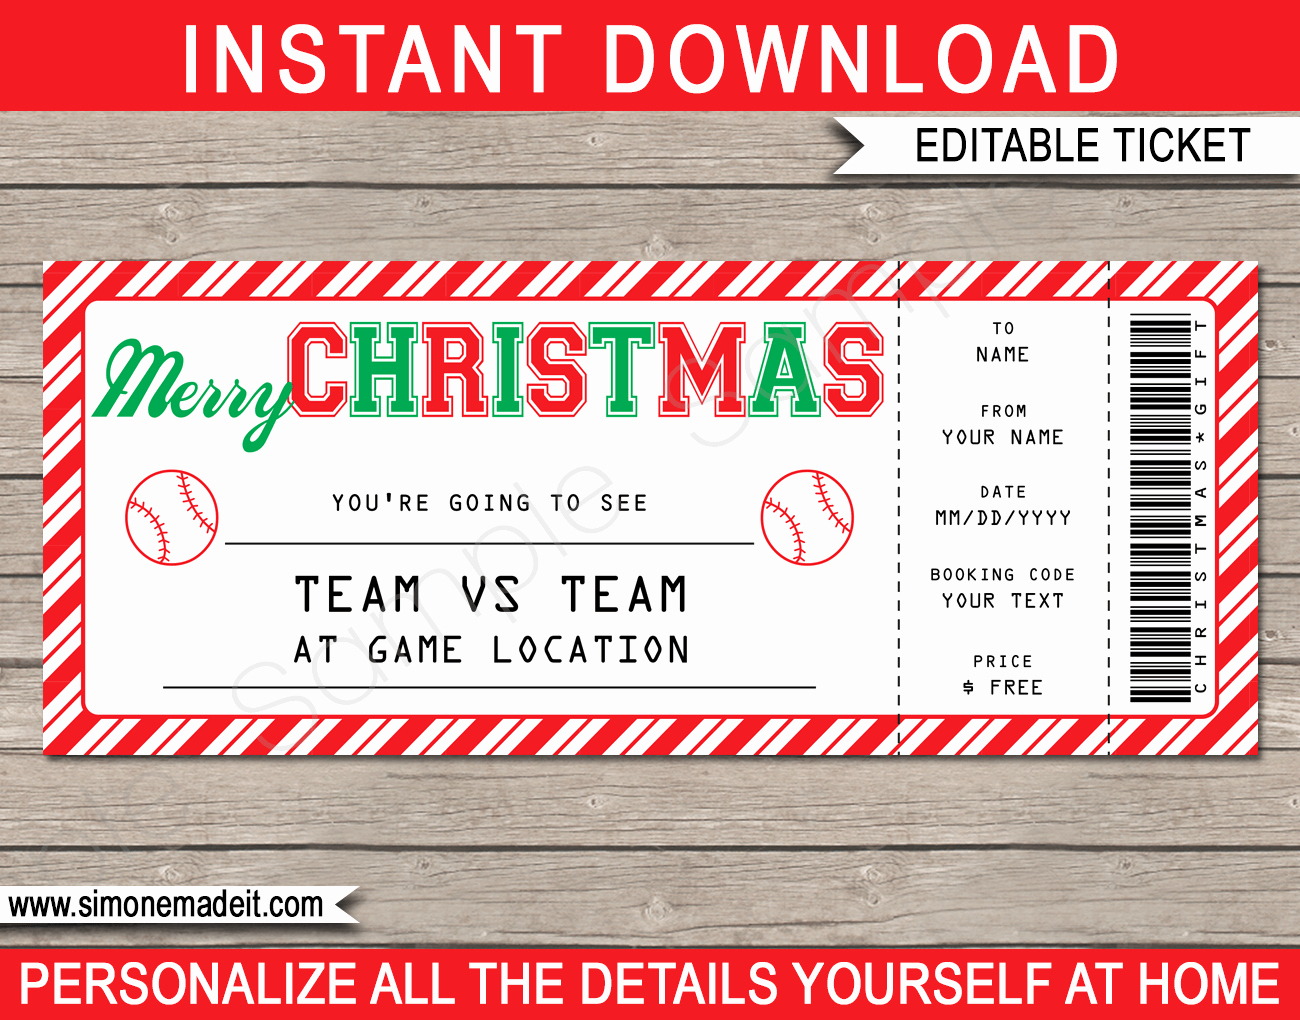 Baseball Ticket Template Free New Christmas Baseball Ticket Gift Voucher